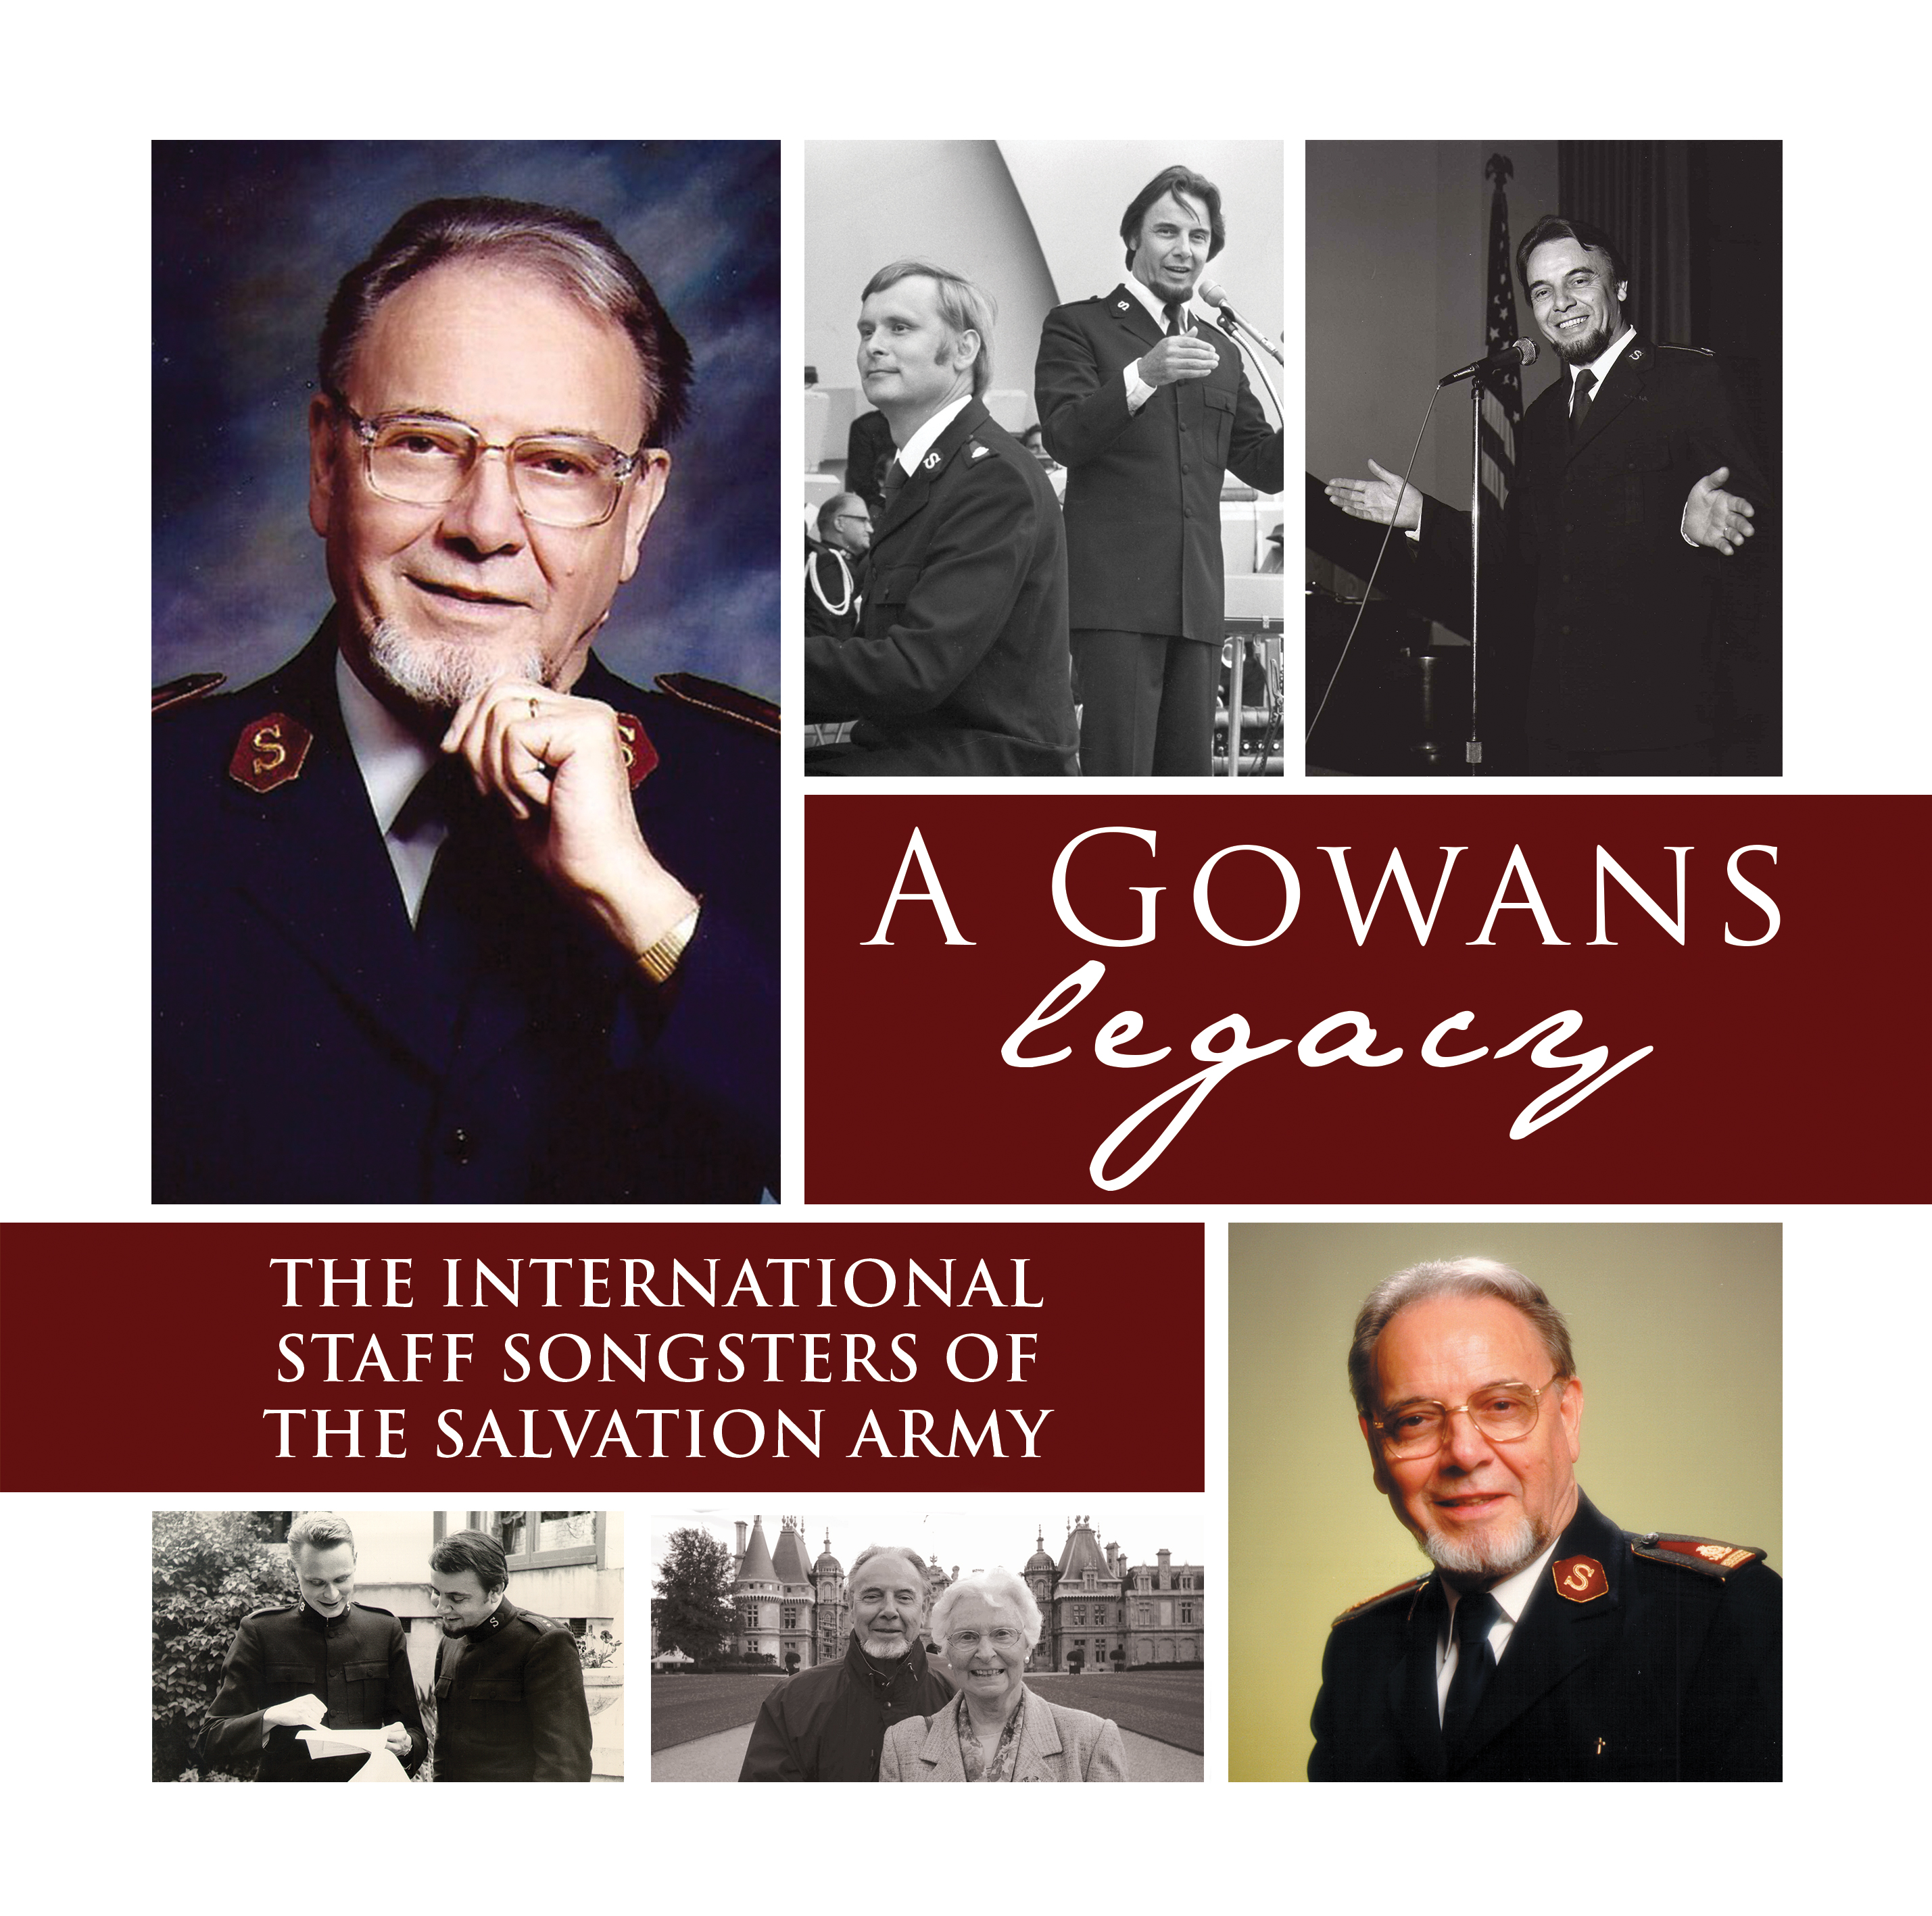 A Gowans Legacy - Download